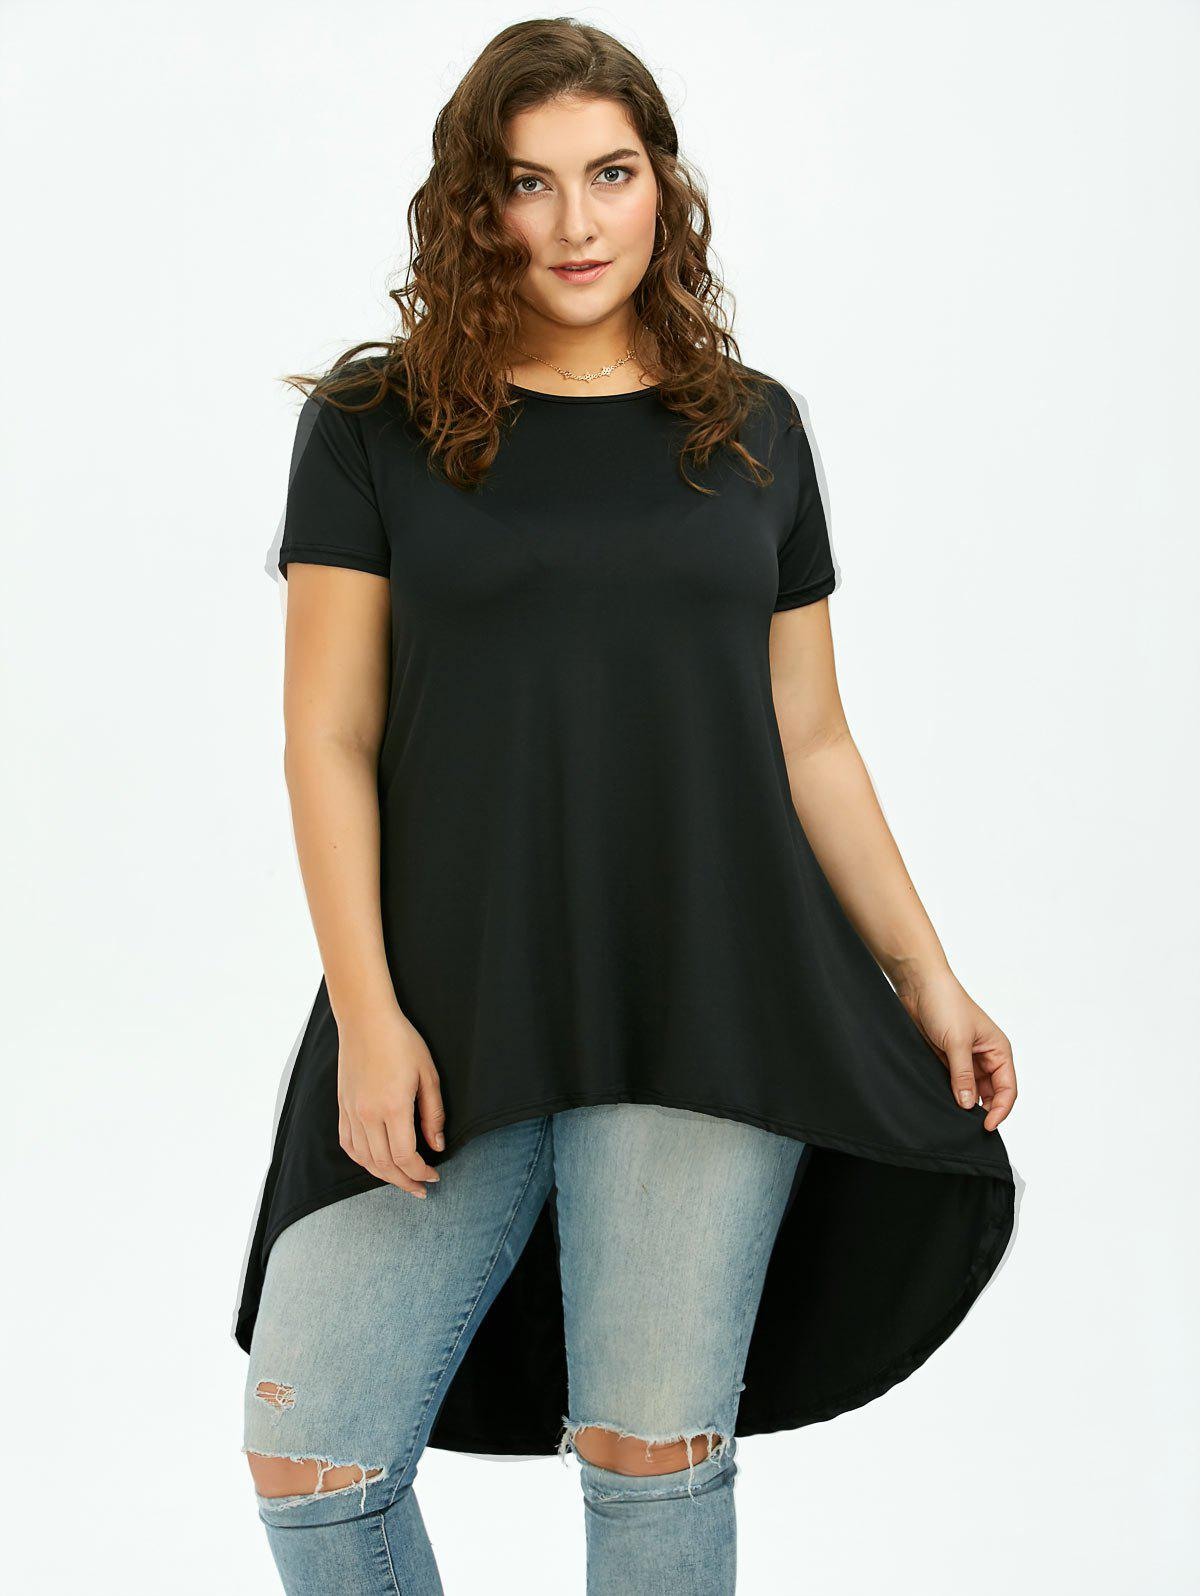 Plus Size Blouses: White, Denim & More | TorridSizes  · Made for a Perfect Fit.